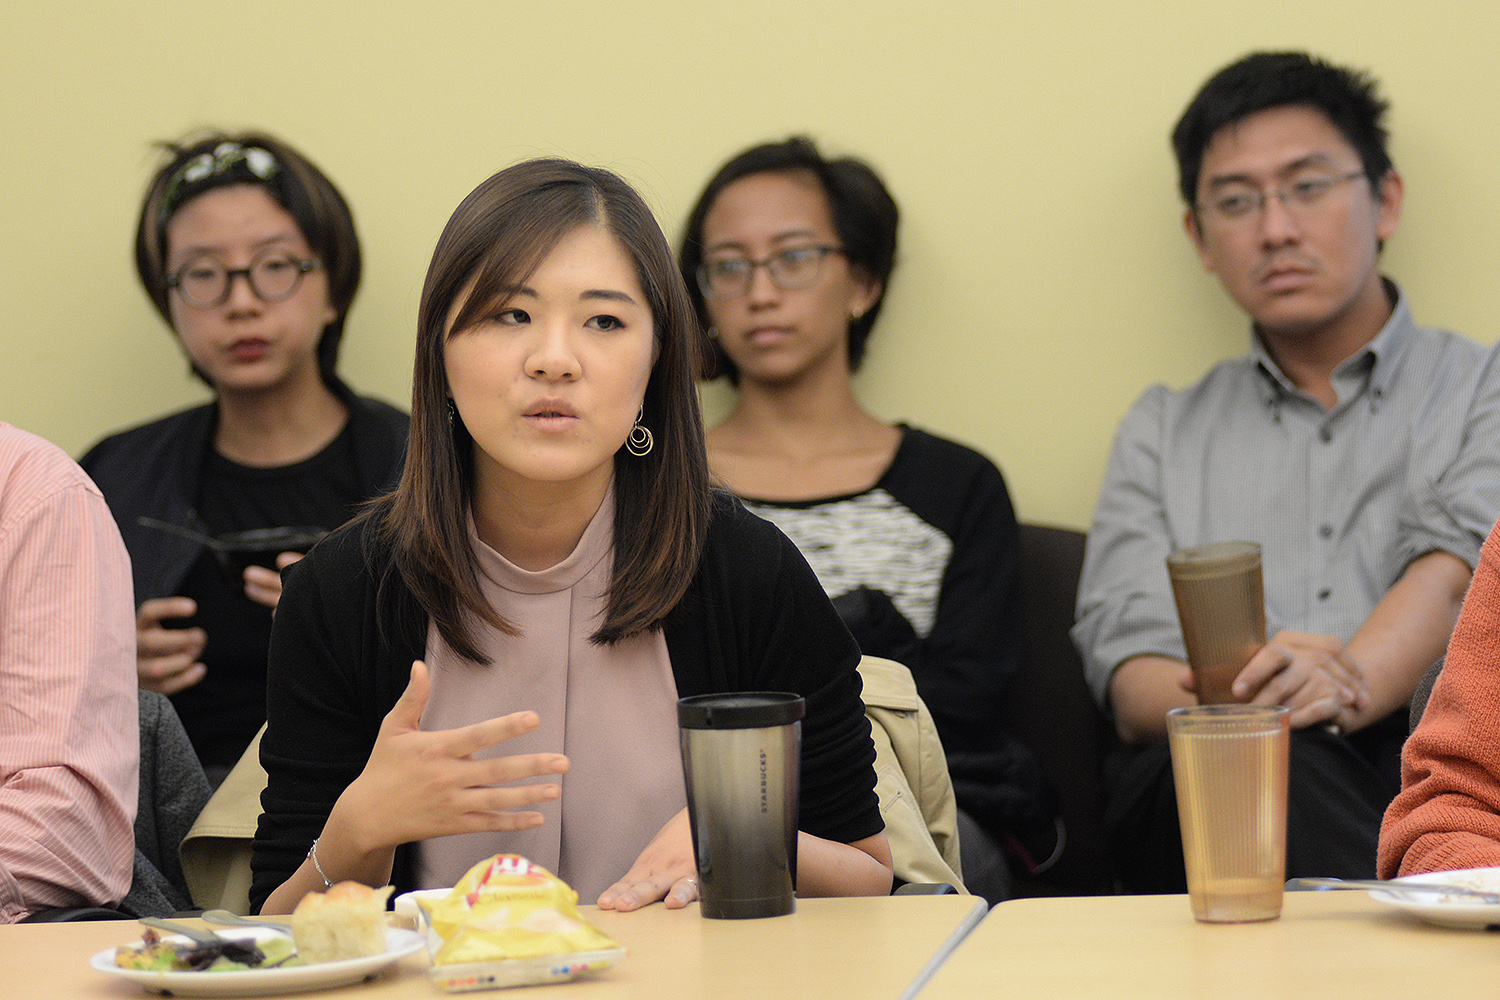 """Joan Cho, assistant professor of East Asian studies, assistant professor of government, shared that she is a """"1.5 generation Korean American,"""" meaning that she was born in South Korea, and by choice, naturalized to become a U.S. citizen.""""Being a 1.5 generation allows me to understand some of the different experiences and perspectives between the first generation (Asians living/studying/working in the U.S.) and second generation (those who are more likely to identify themselves as 'Asian Americans'),"""" she said."""